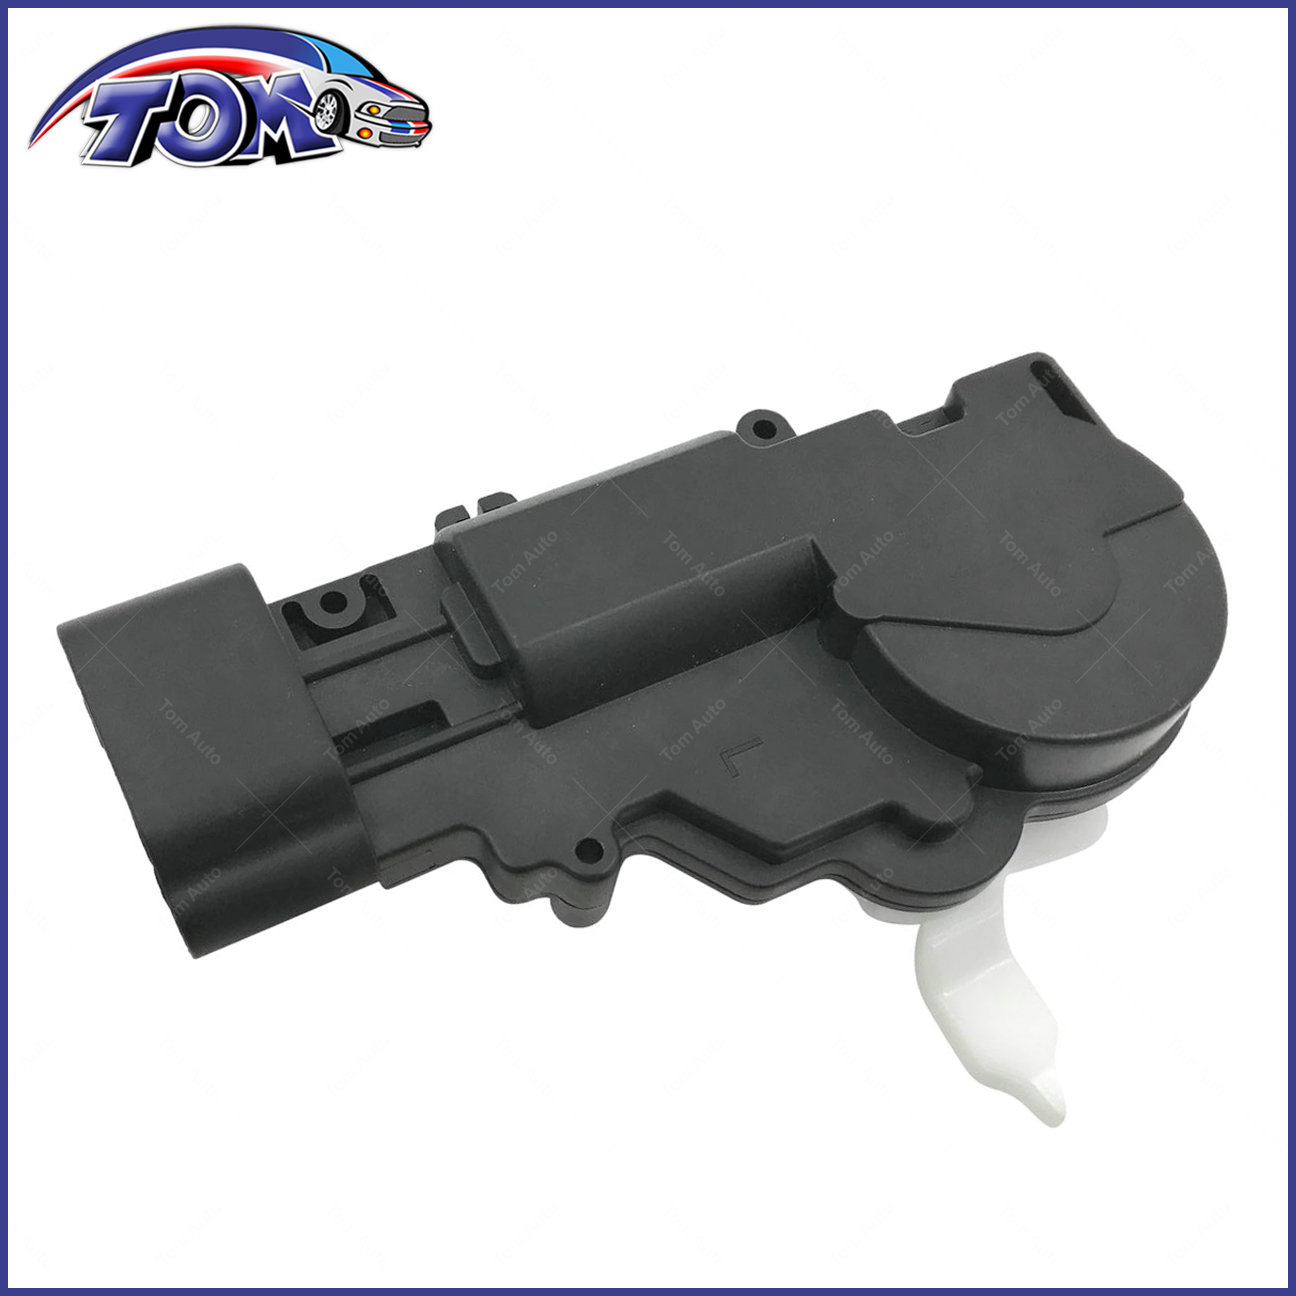 NEW Door Lock Actuator Fit For 2001 2002 2003 2004 Toyota Tacoma US